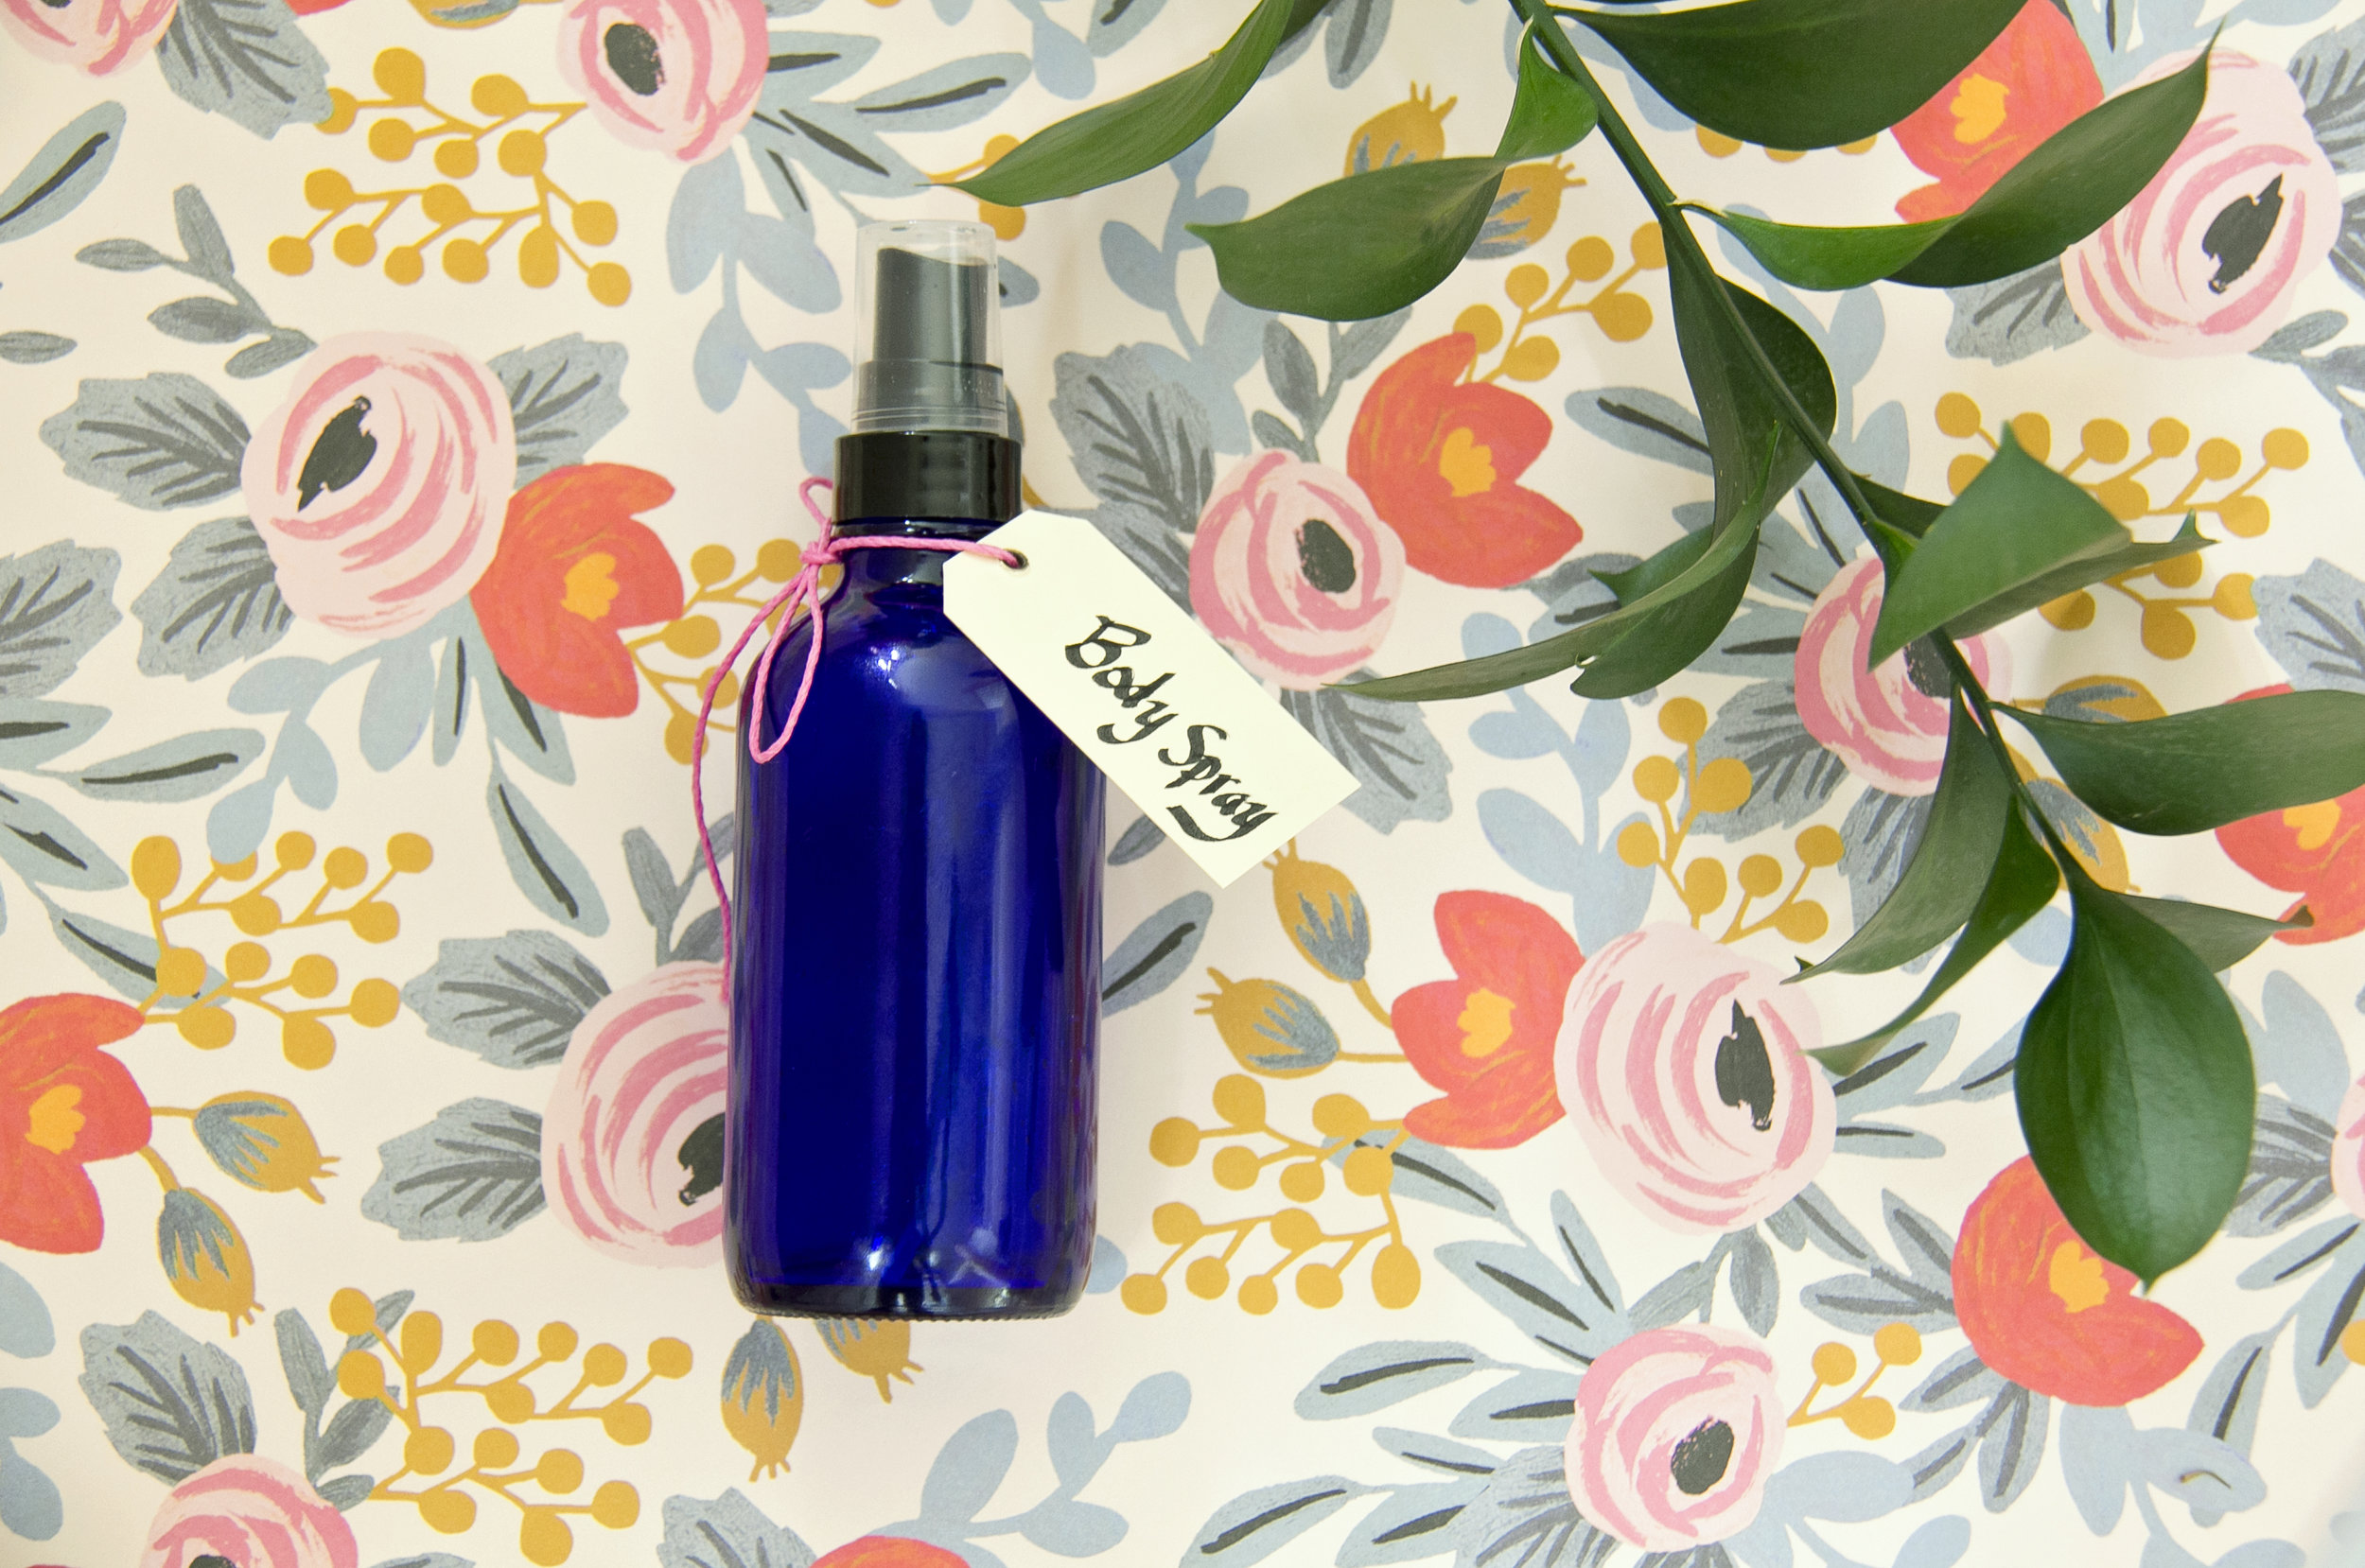 Love body sprays but hate the chemicals? Check out this easy DIY for an all natural solution!